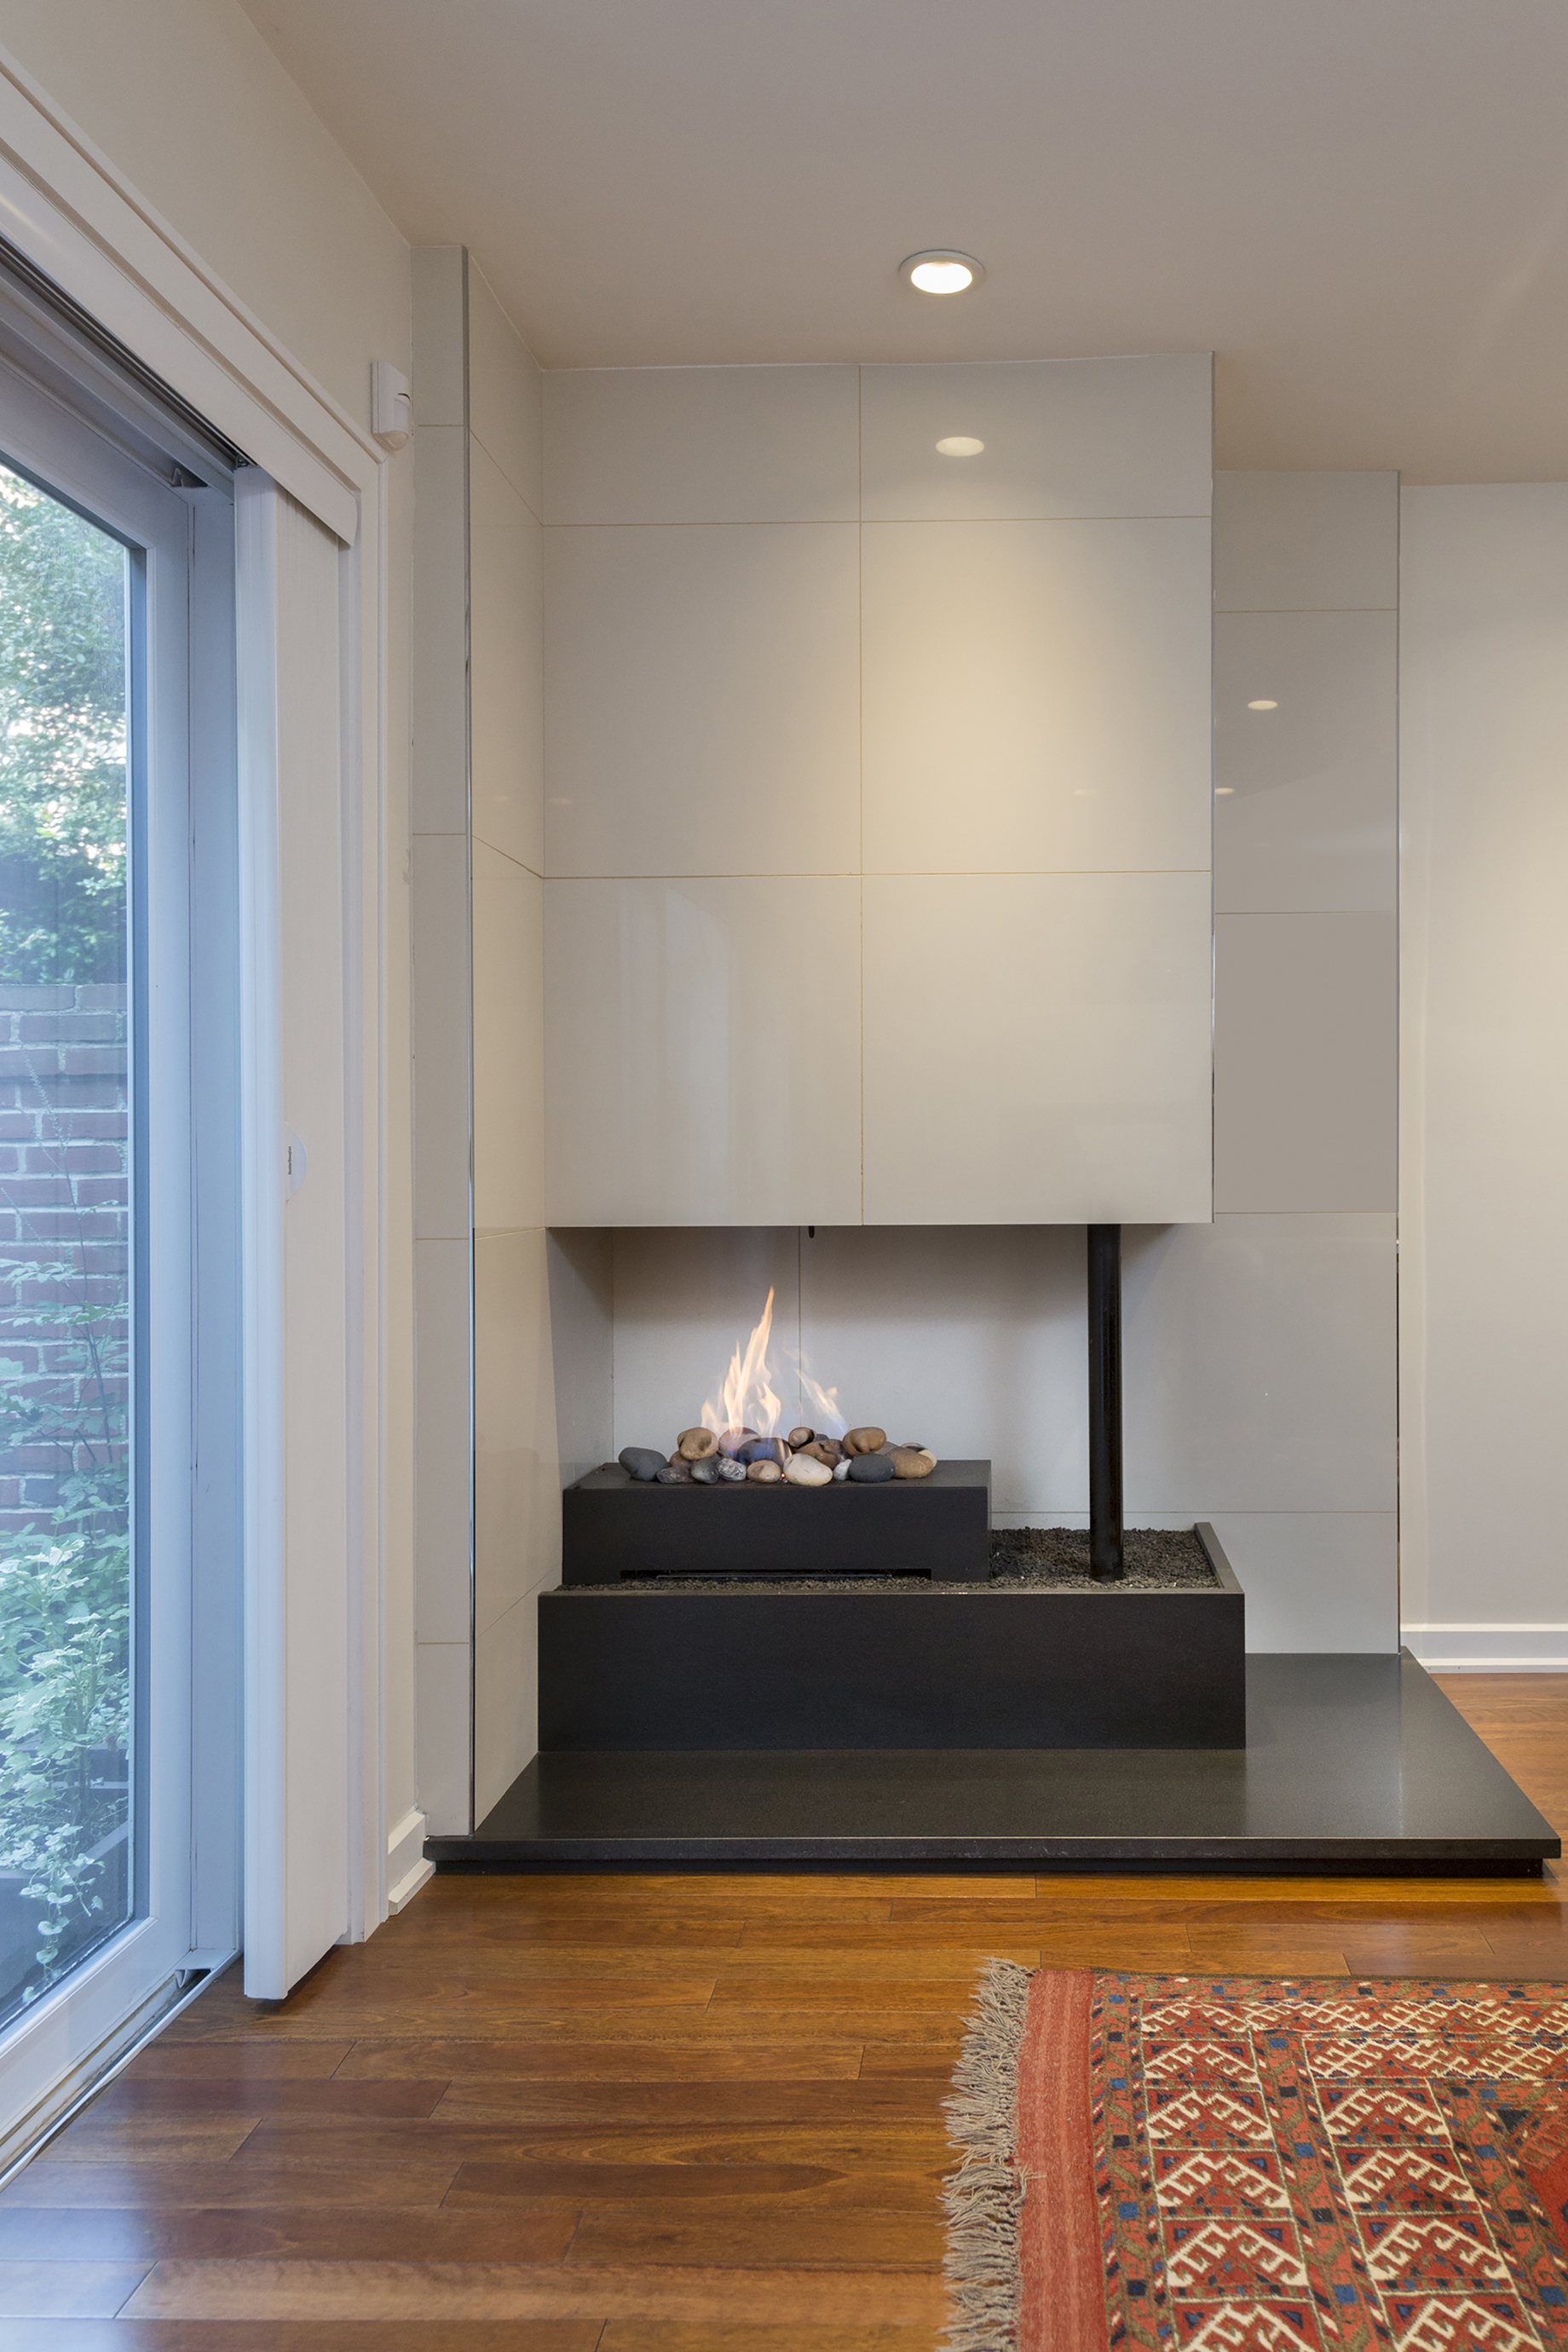 Washington Square West surprises with modern interior, asks $925K ...